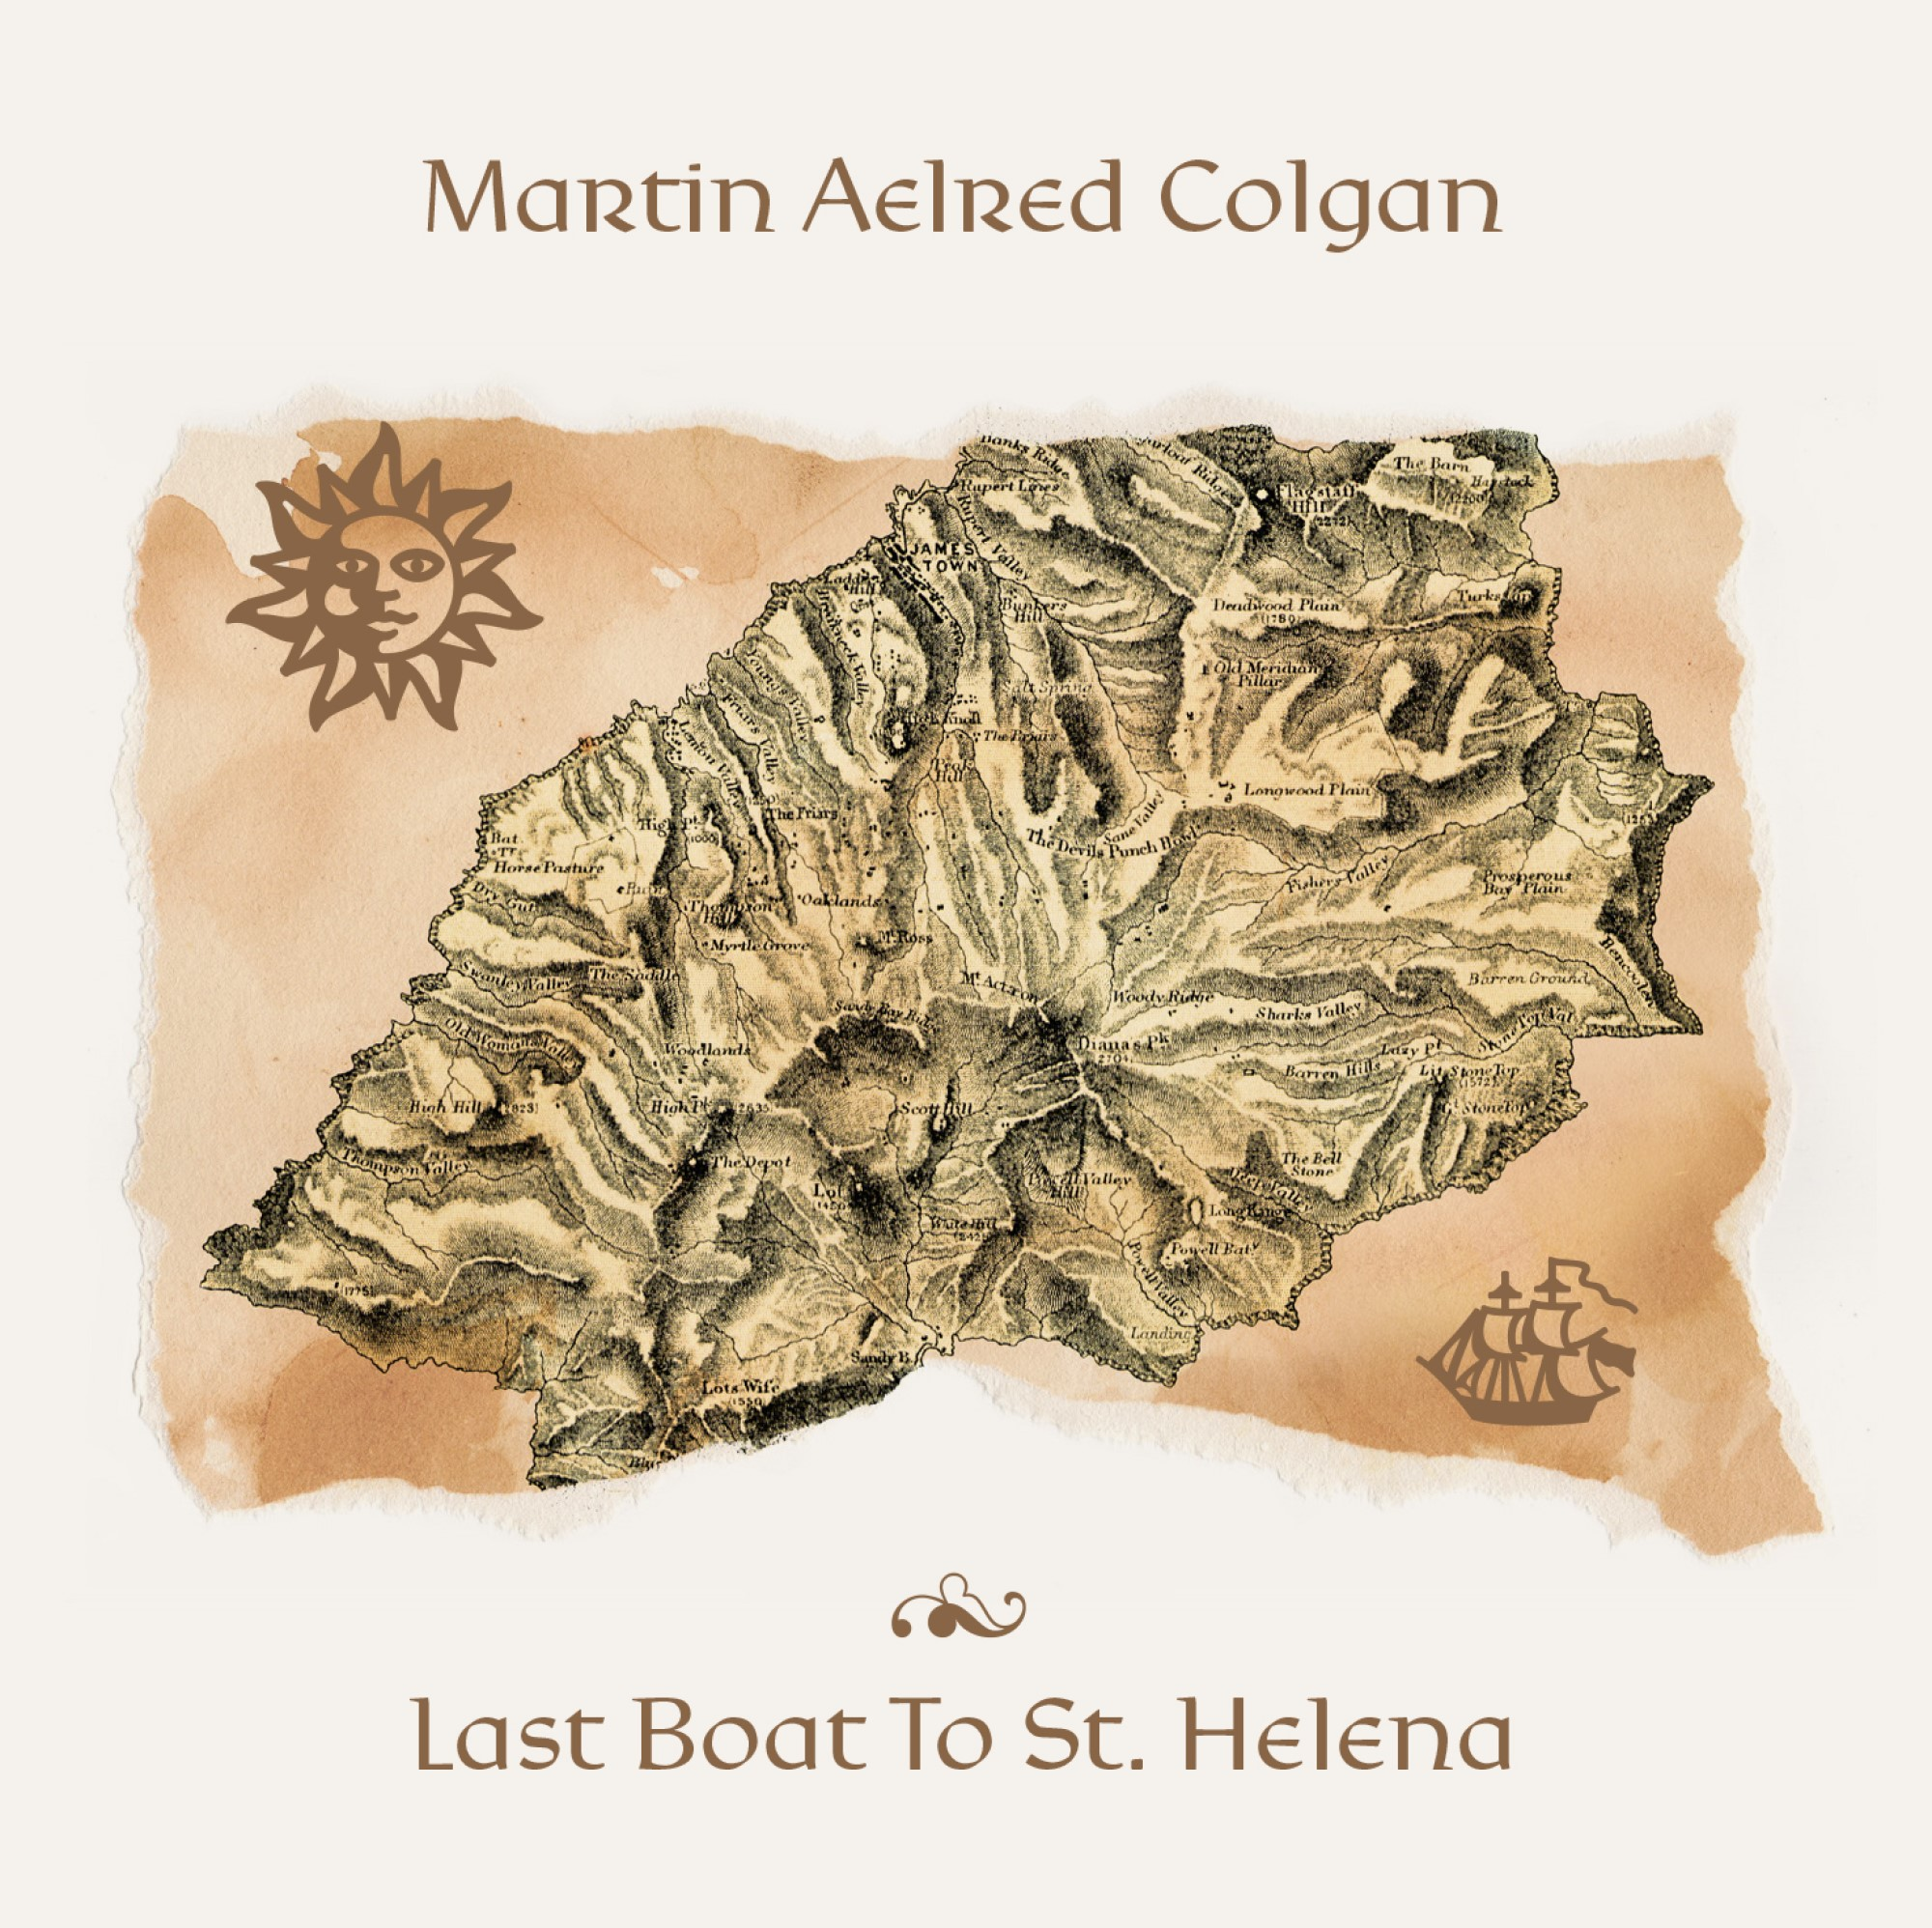 LOCKDOWN ISOLATION INSPIRES MUSICIAN TO MARK THE SAILING OF THE LAST BOAT TO ST HELENA